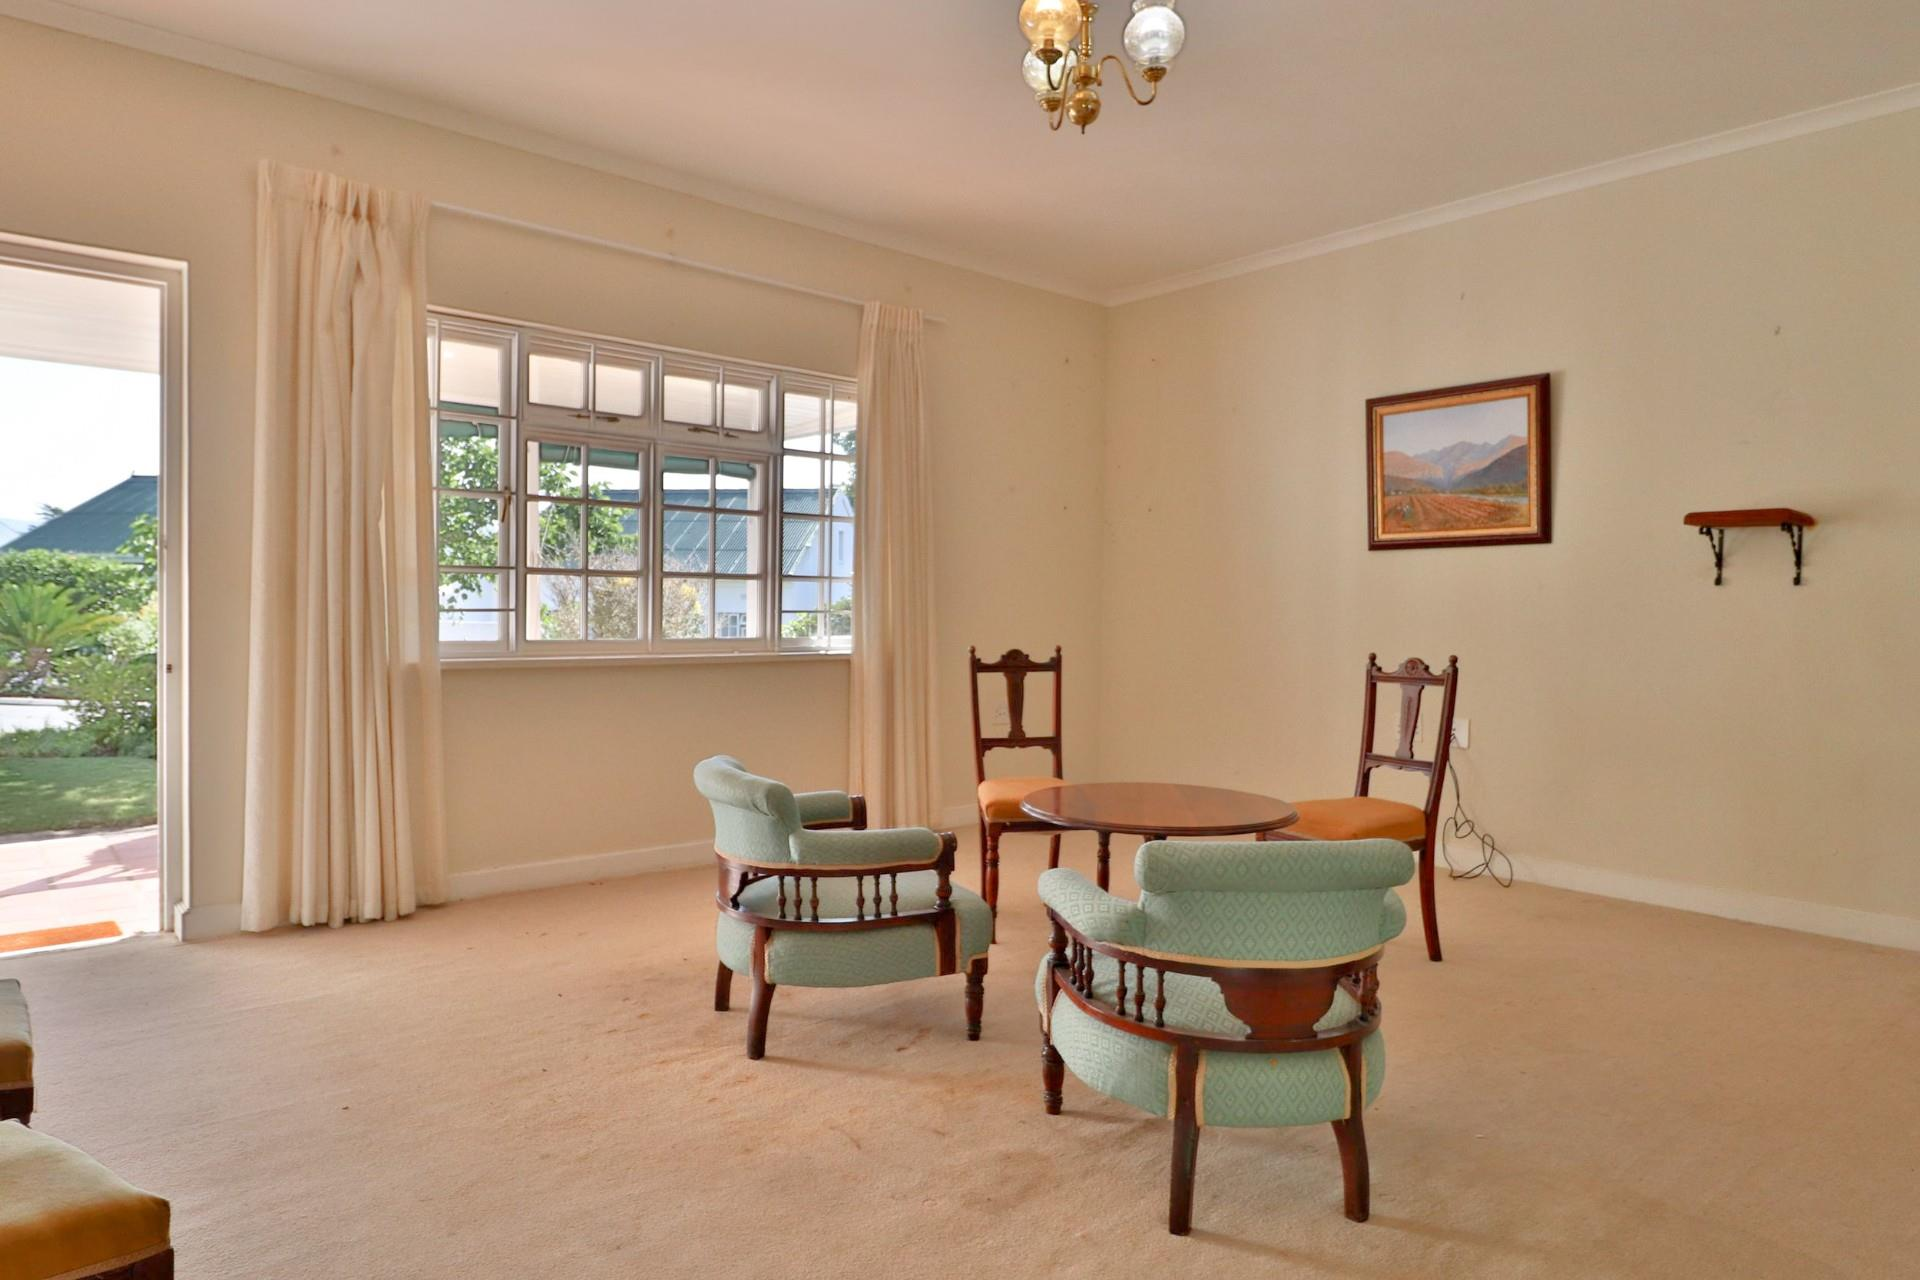 2 Bedroom House For Sale in Belvidere Estate